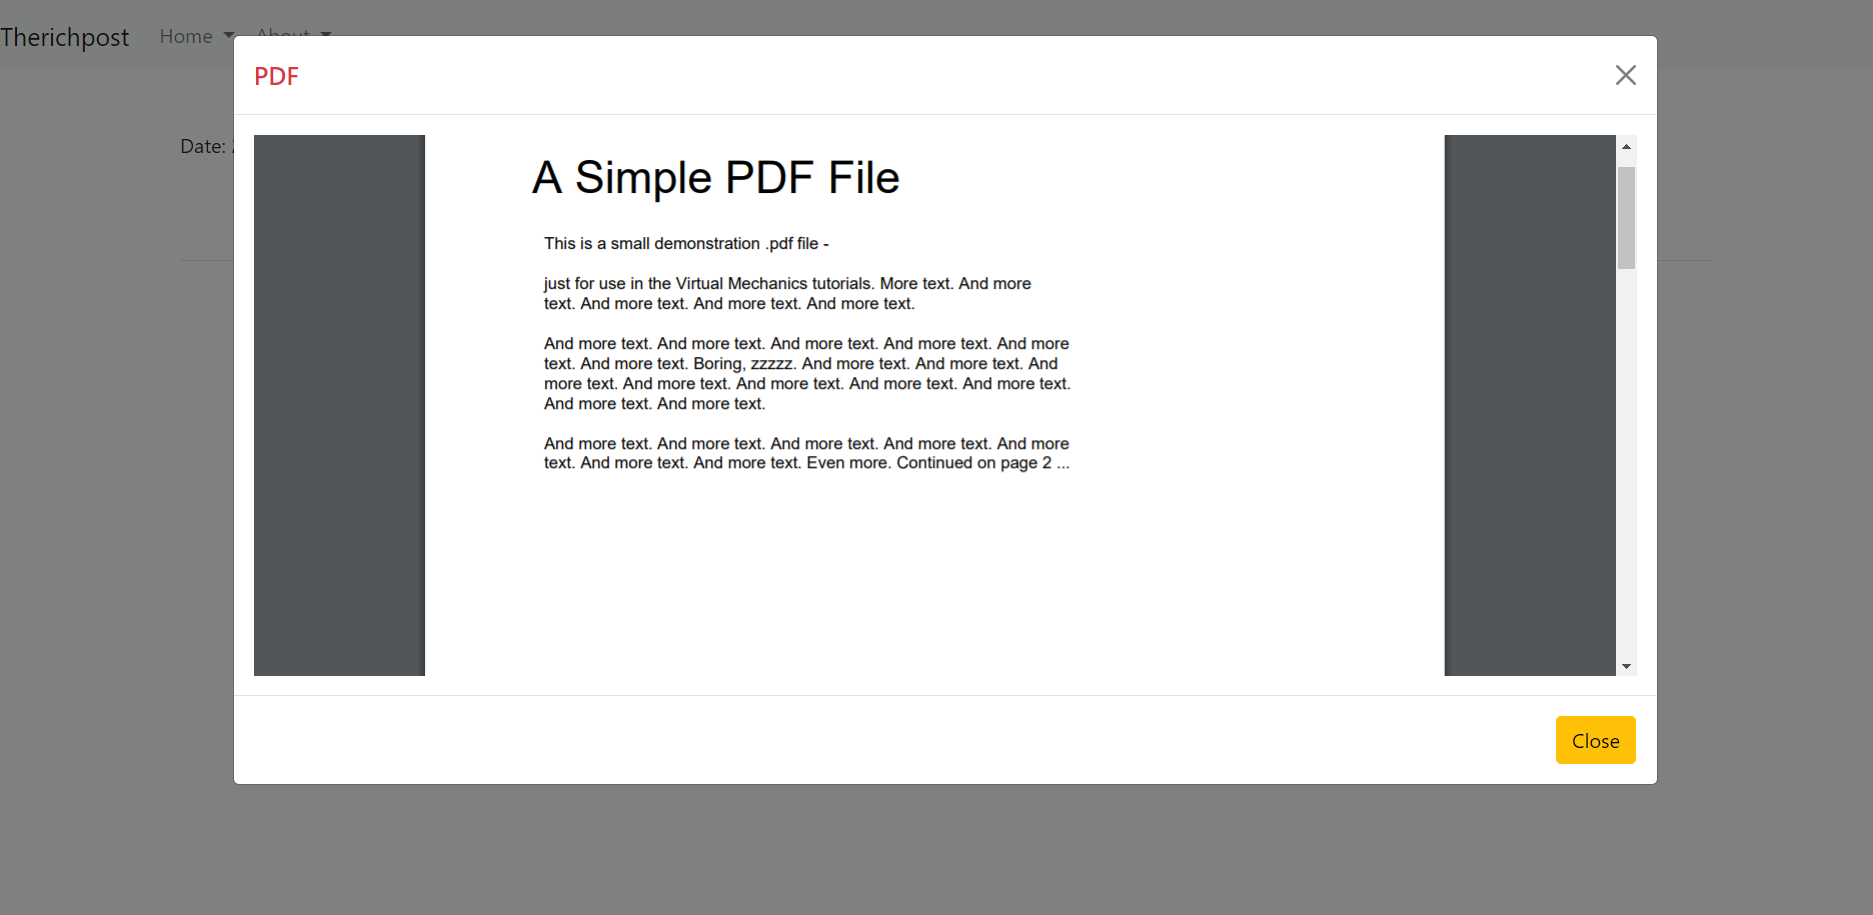 How to open pdf file inside bootstrap 5 modal popup in angular 12 application?